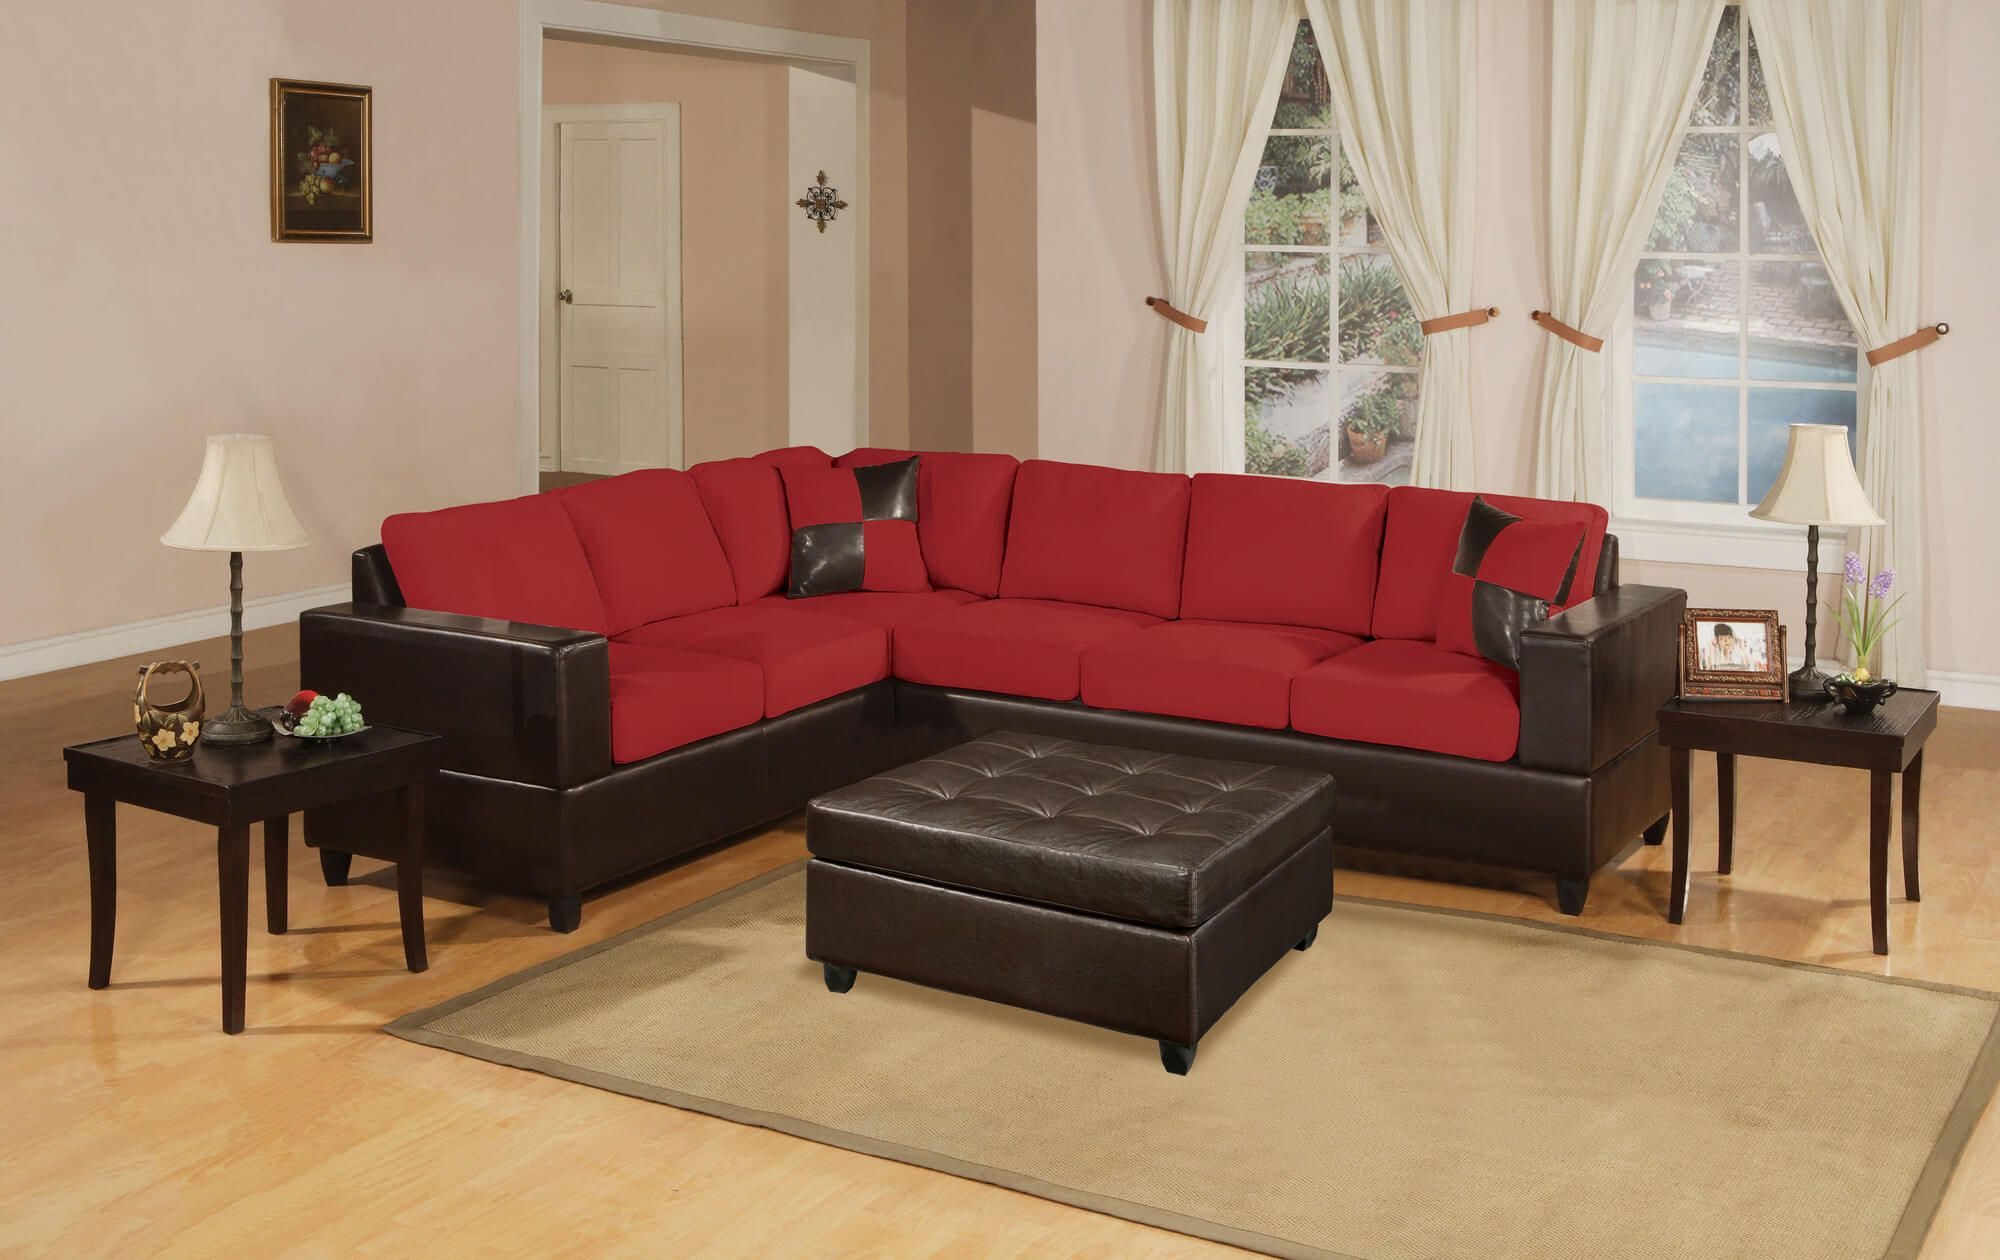 awesome Lovely Lazy Boy Sectional Sofas 18 Home Decorating